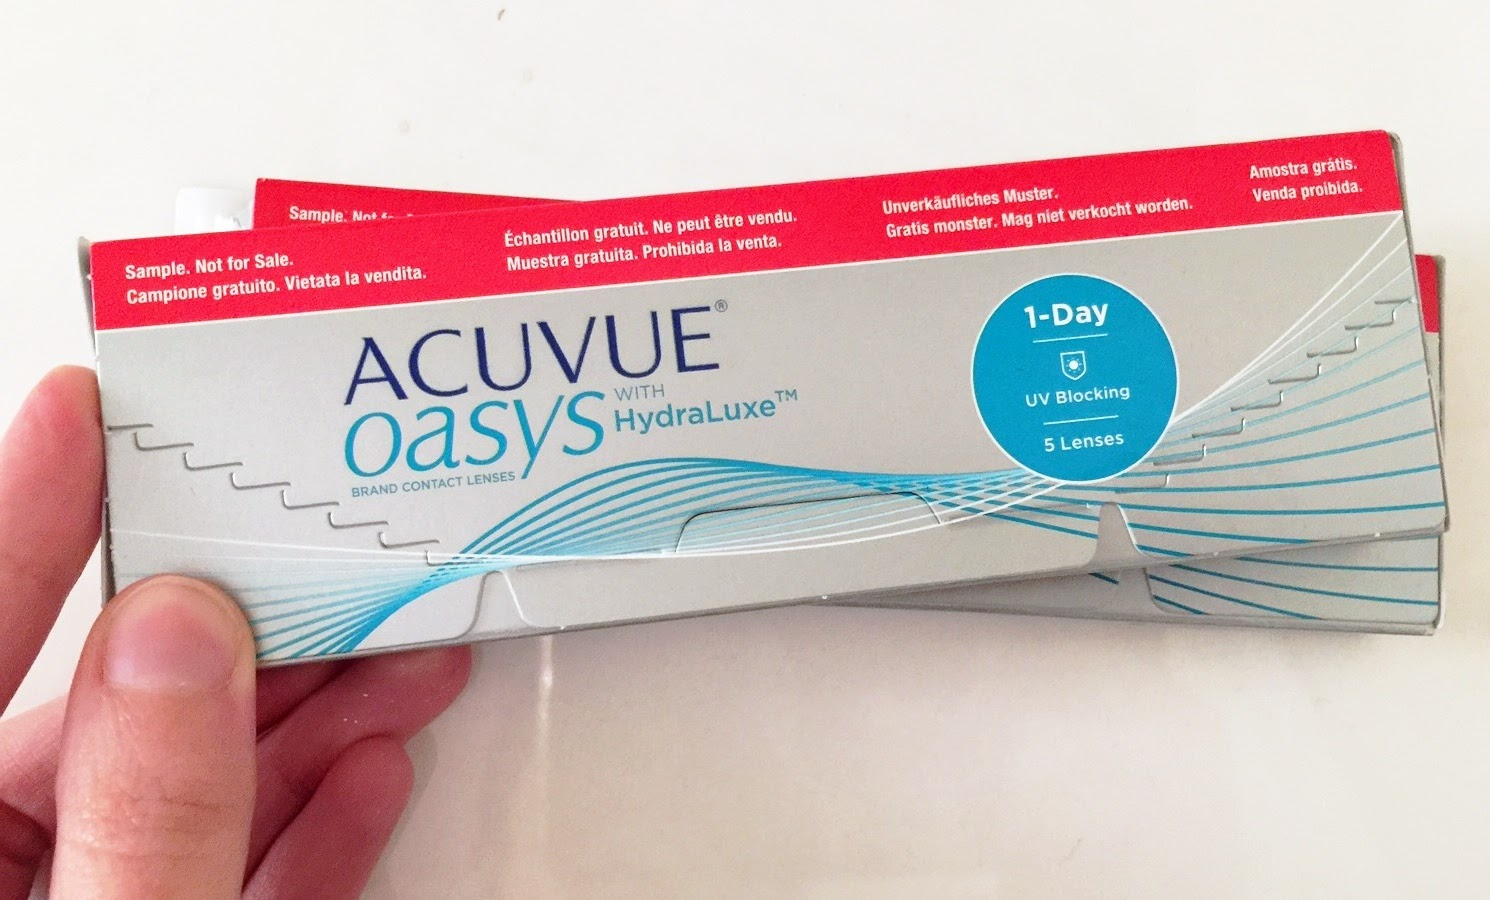 one day acuvue Acuvue one day - duration: 0:31 j3canada1 25,871 views 0:31 acuvue oasys 1-day contact lenses with katarina johnson-thompson - duration: 0:41 acuvue contact lenses, uk & ireland 1,051 views 0:41 1day acuvue moist contact lenses review - duration: 7:44.